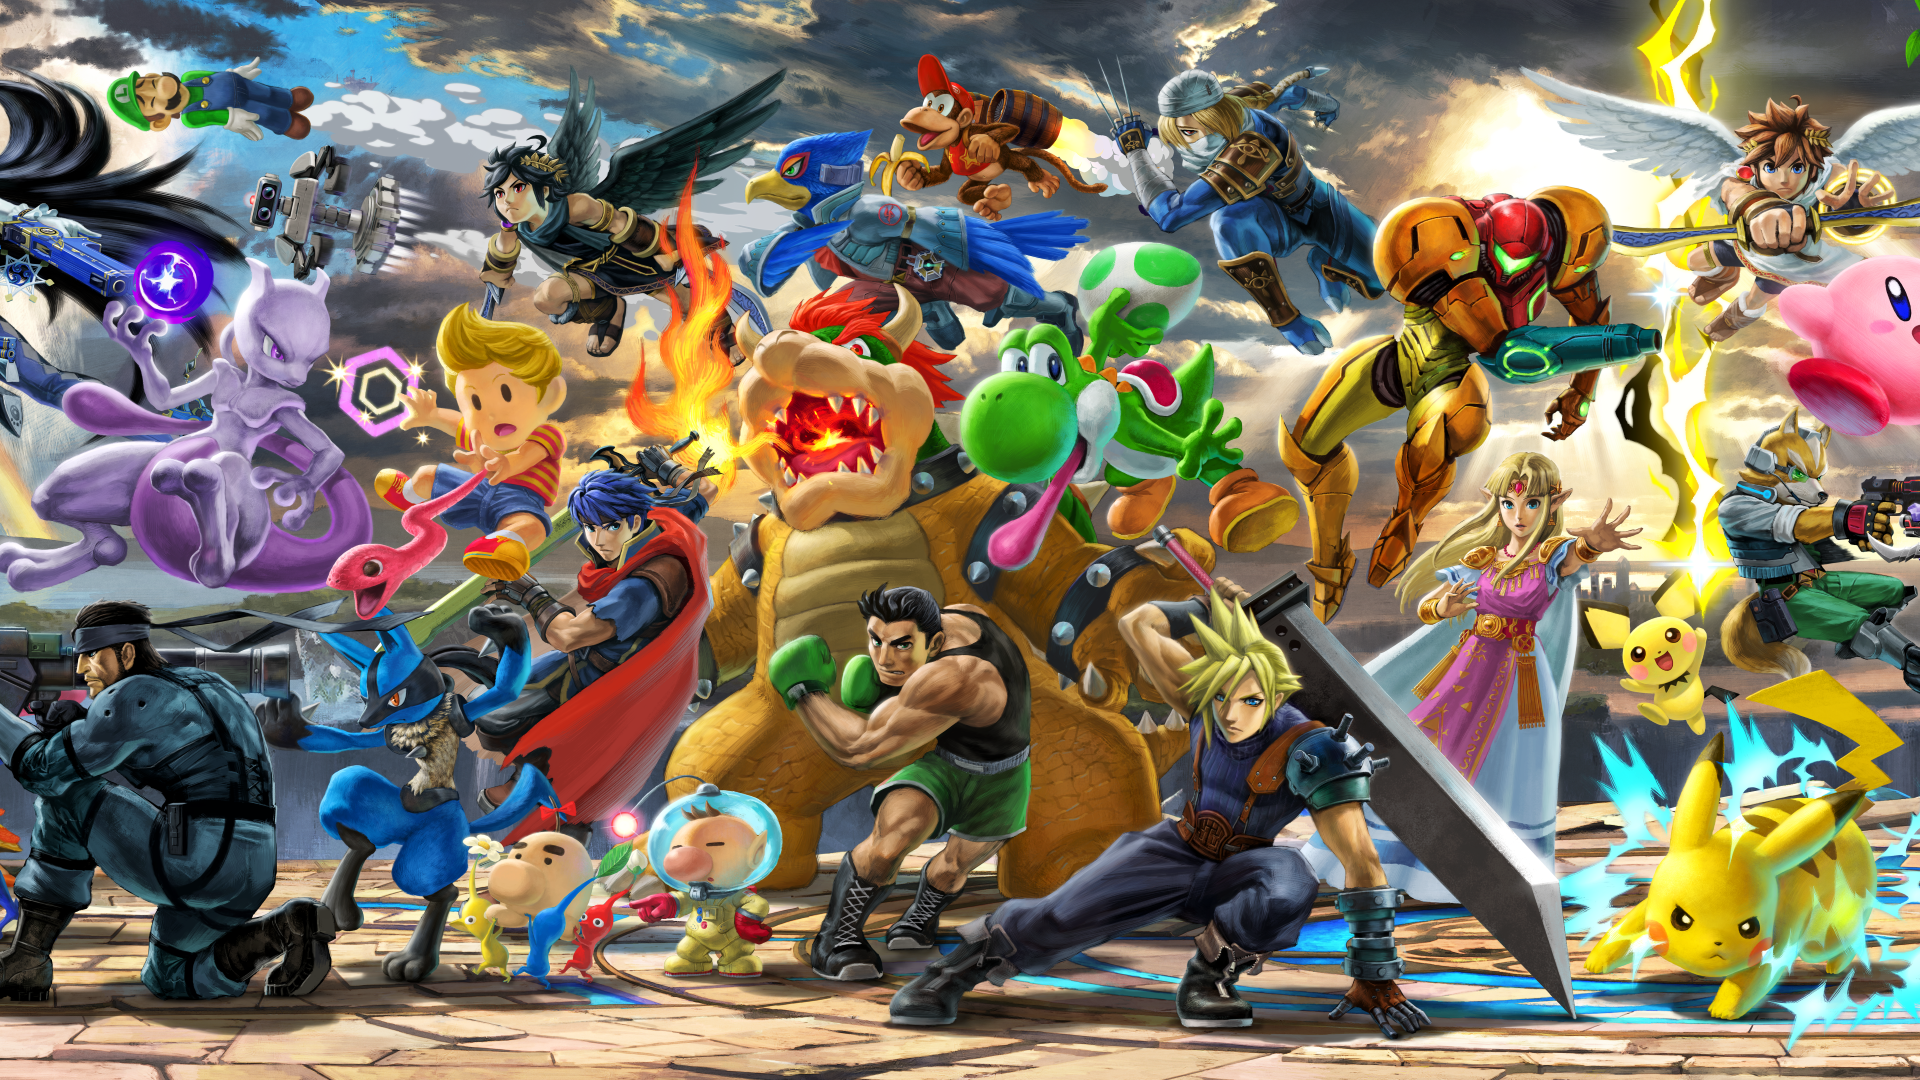 With Its Massive Cast, Super Smash Bros. Ultimate Desperately Needs A Tournament Mode